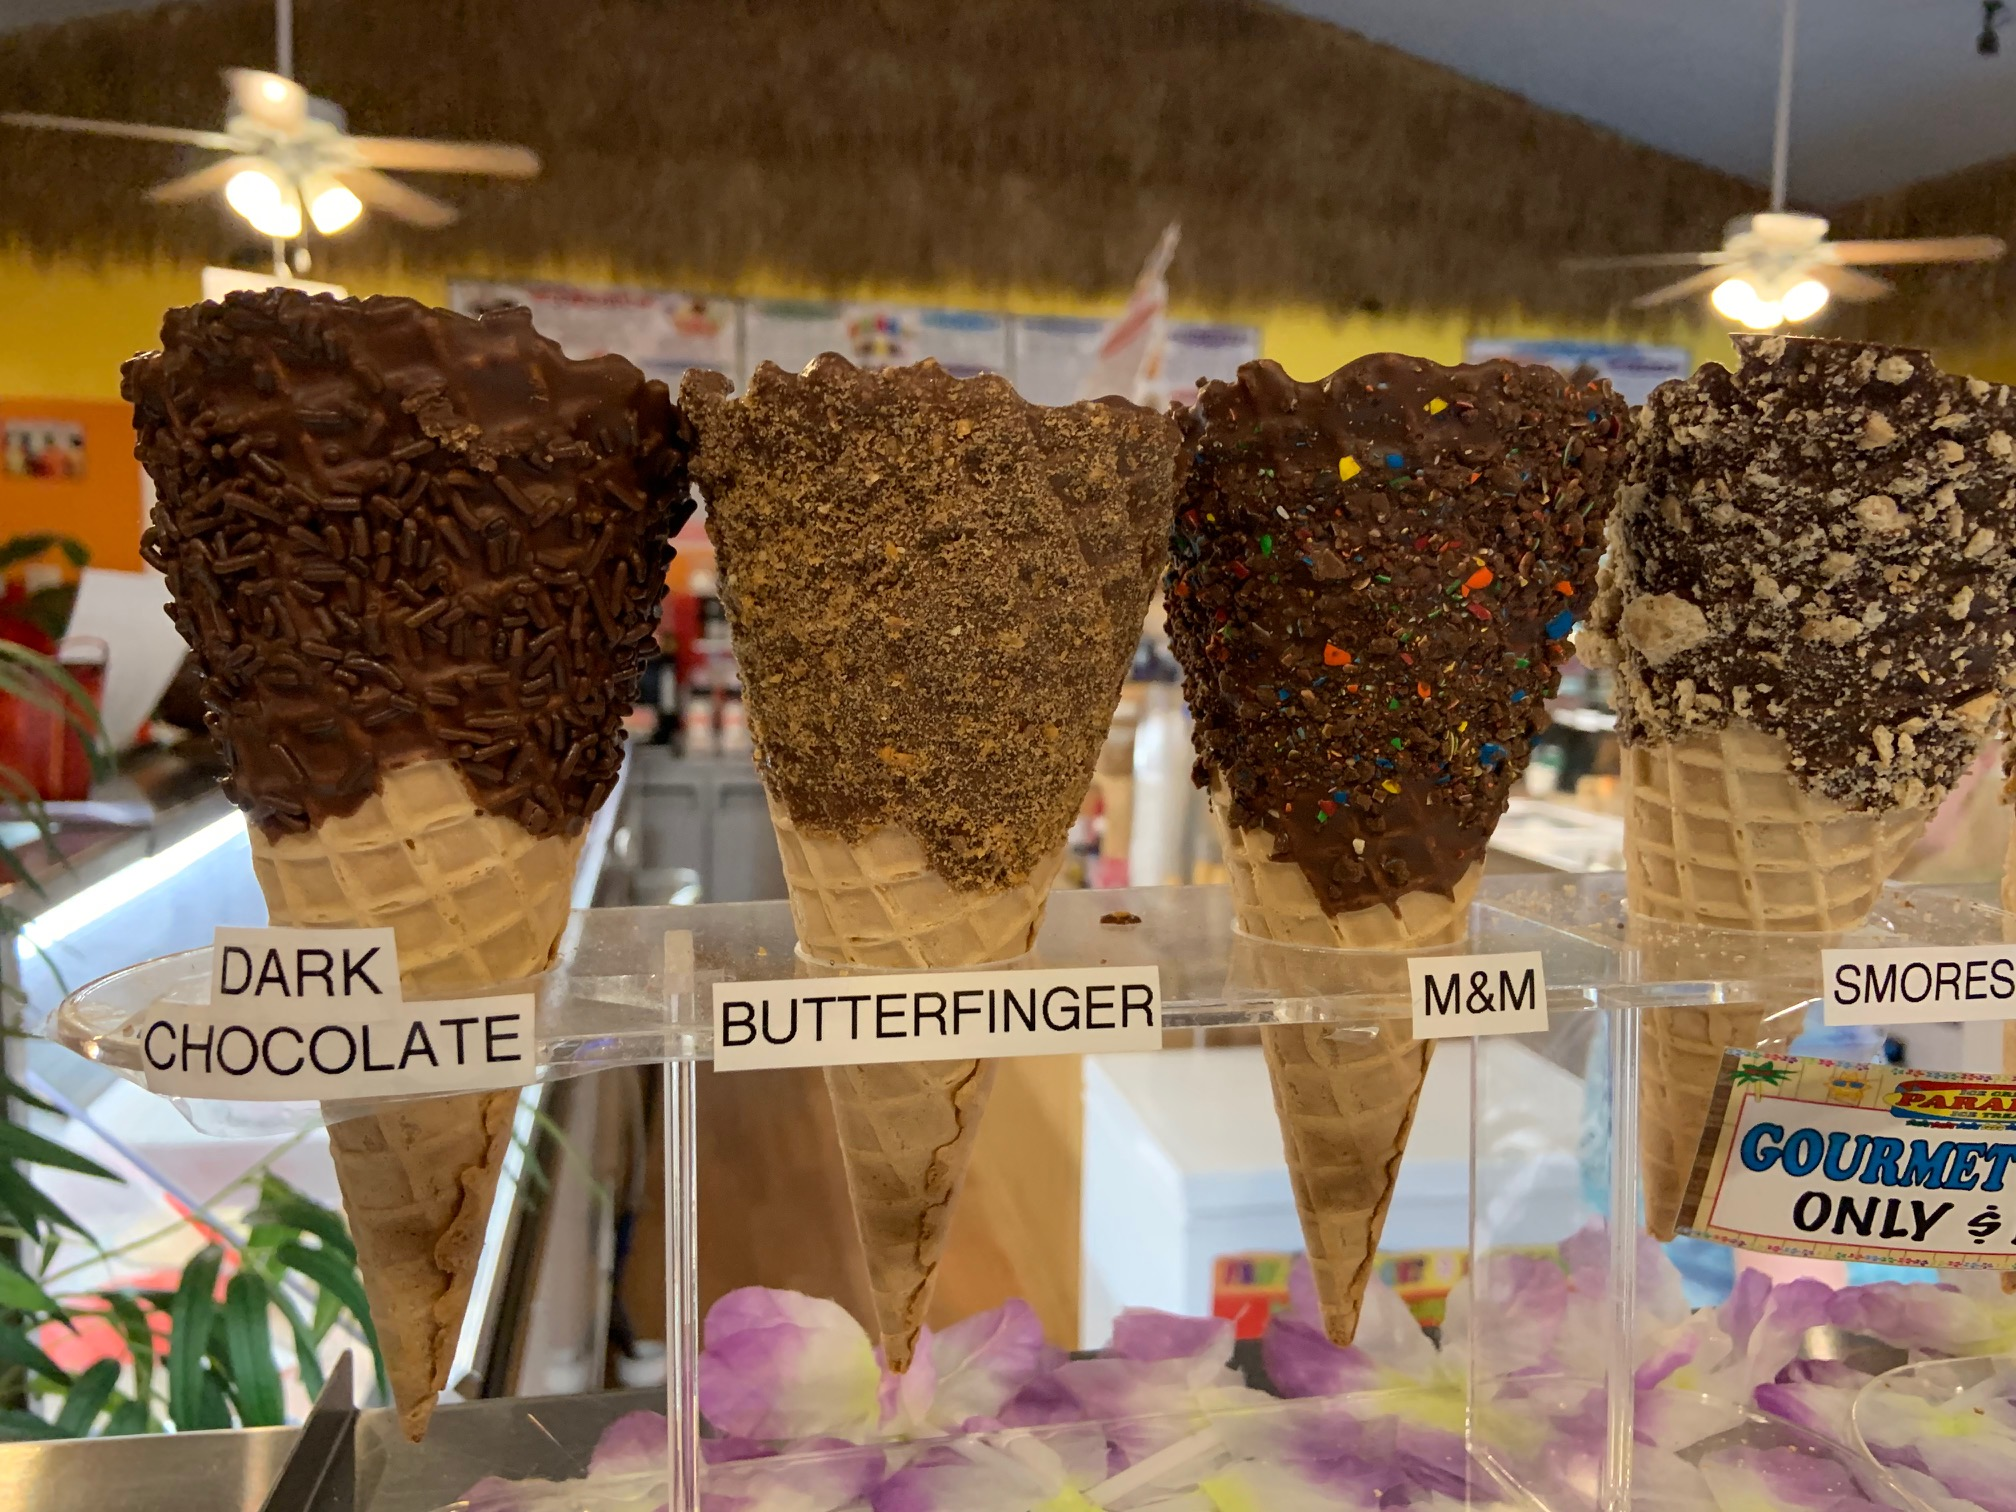 These were the reasonable gourmet cones!